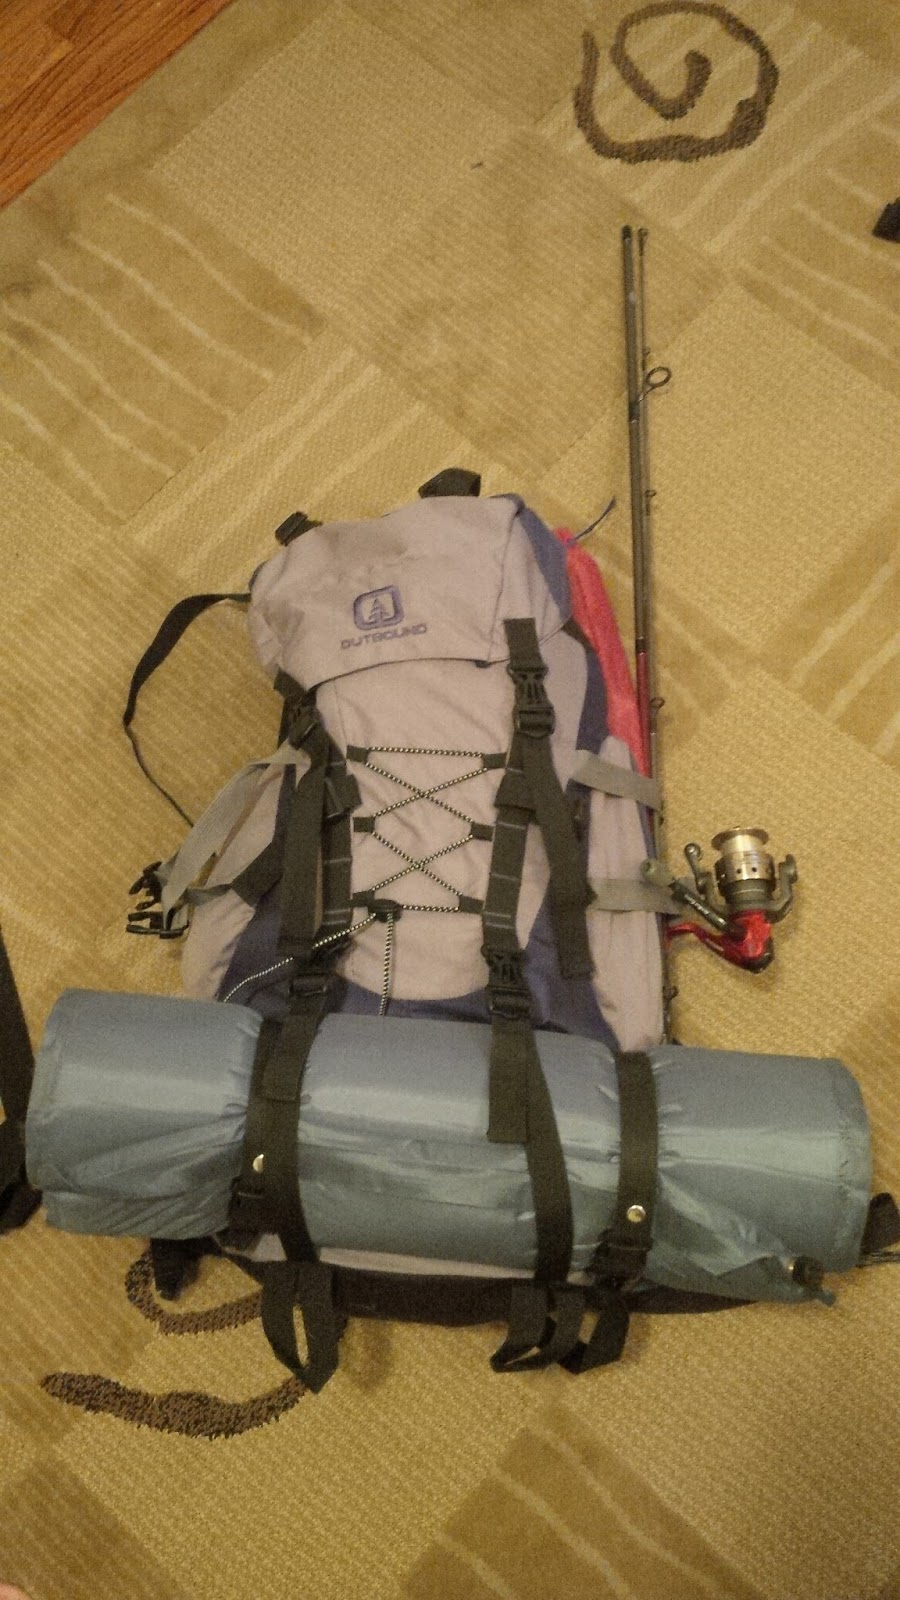 Securing tent poles and fishing rod to my pack